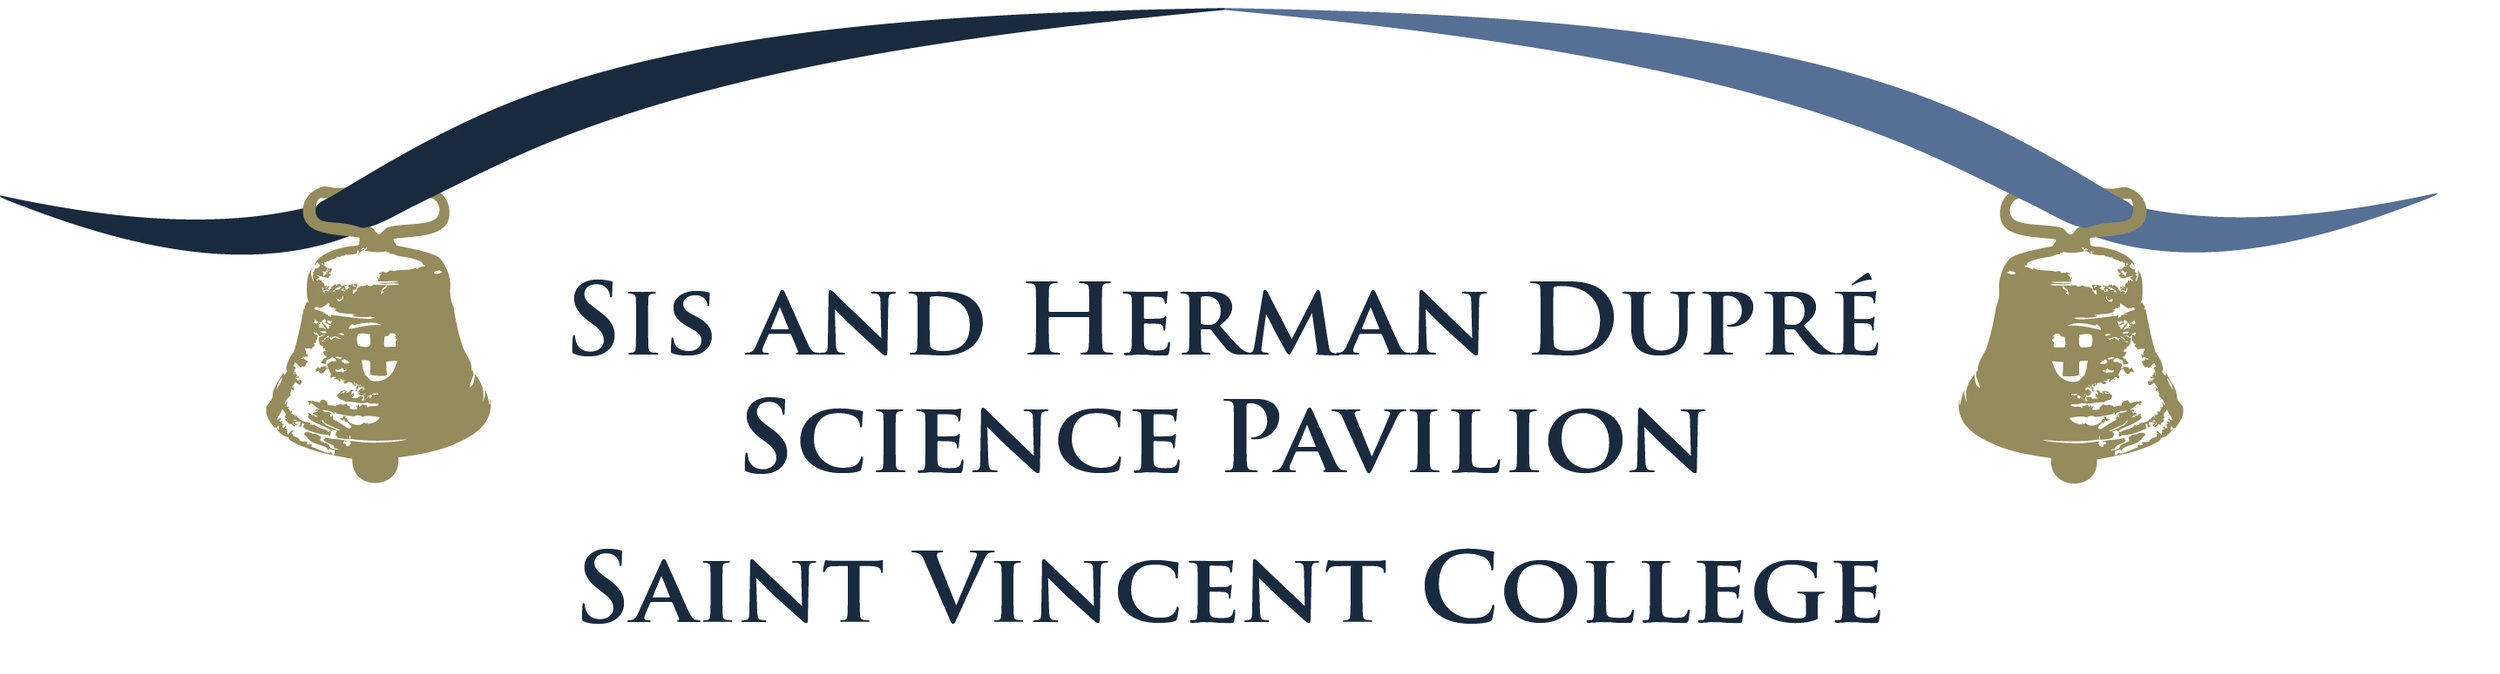 Sis and Herman Dupre Science Pavilion, Saint Vincent College, Logo